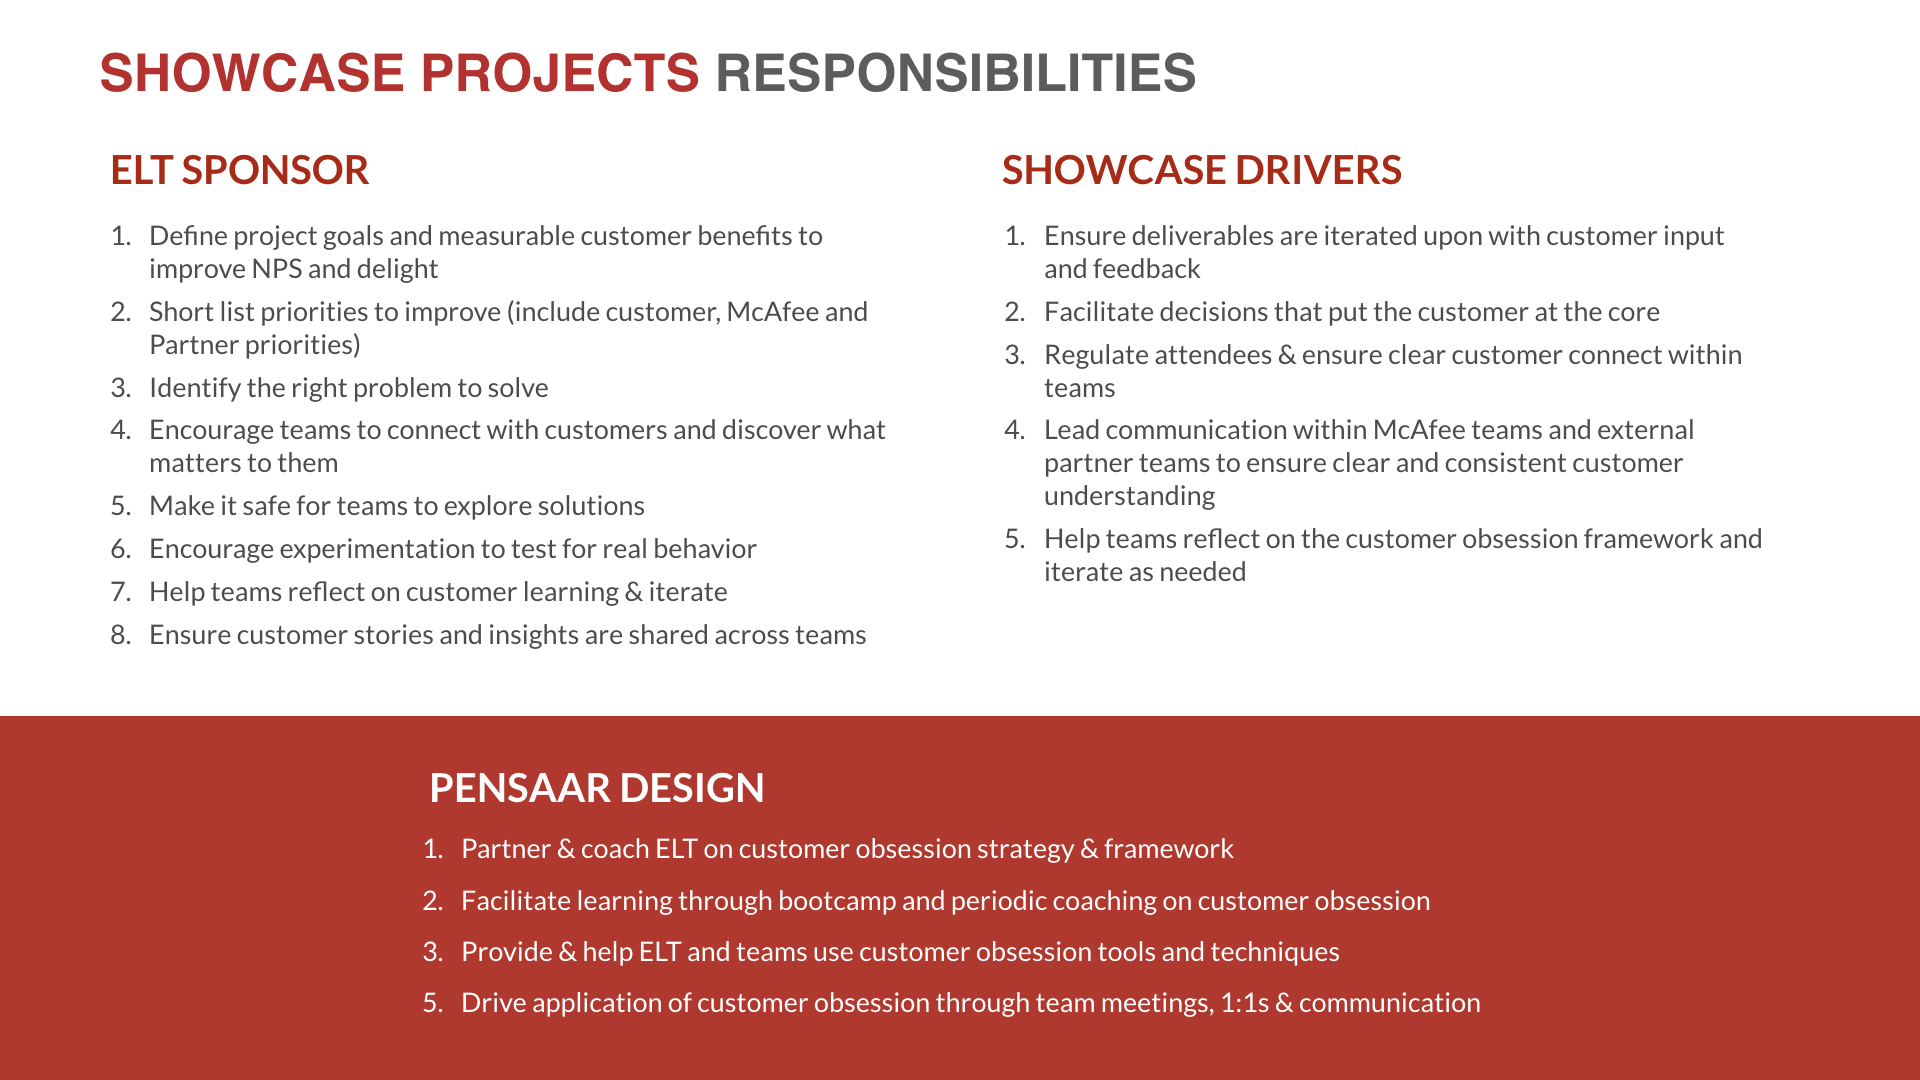 Showcase Projects Responsibilities.jpeg